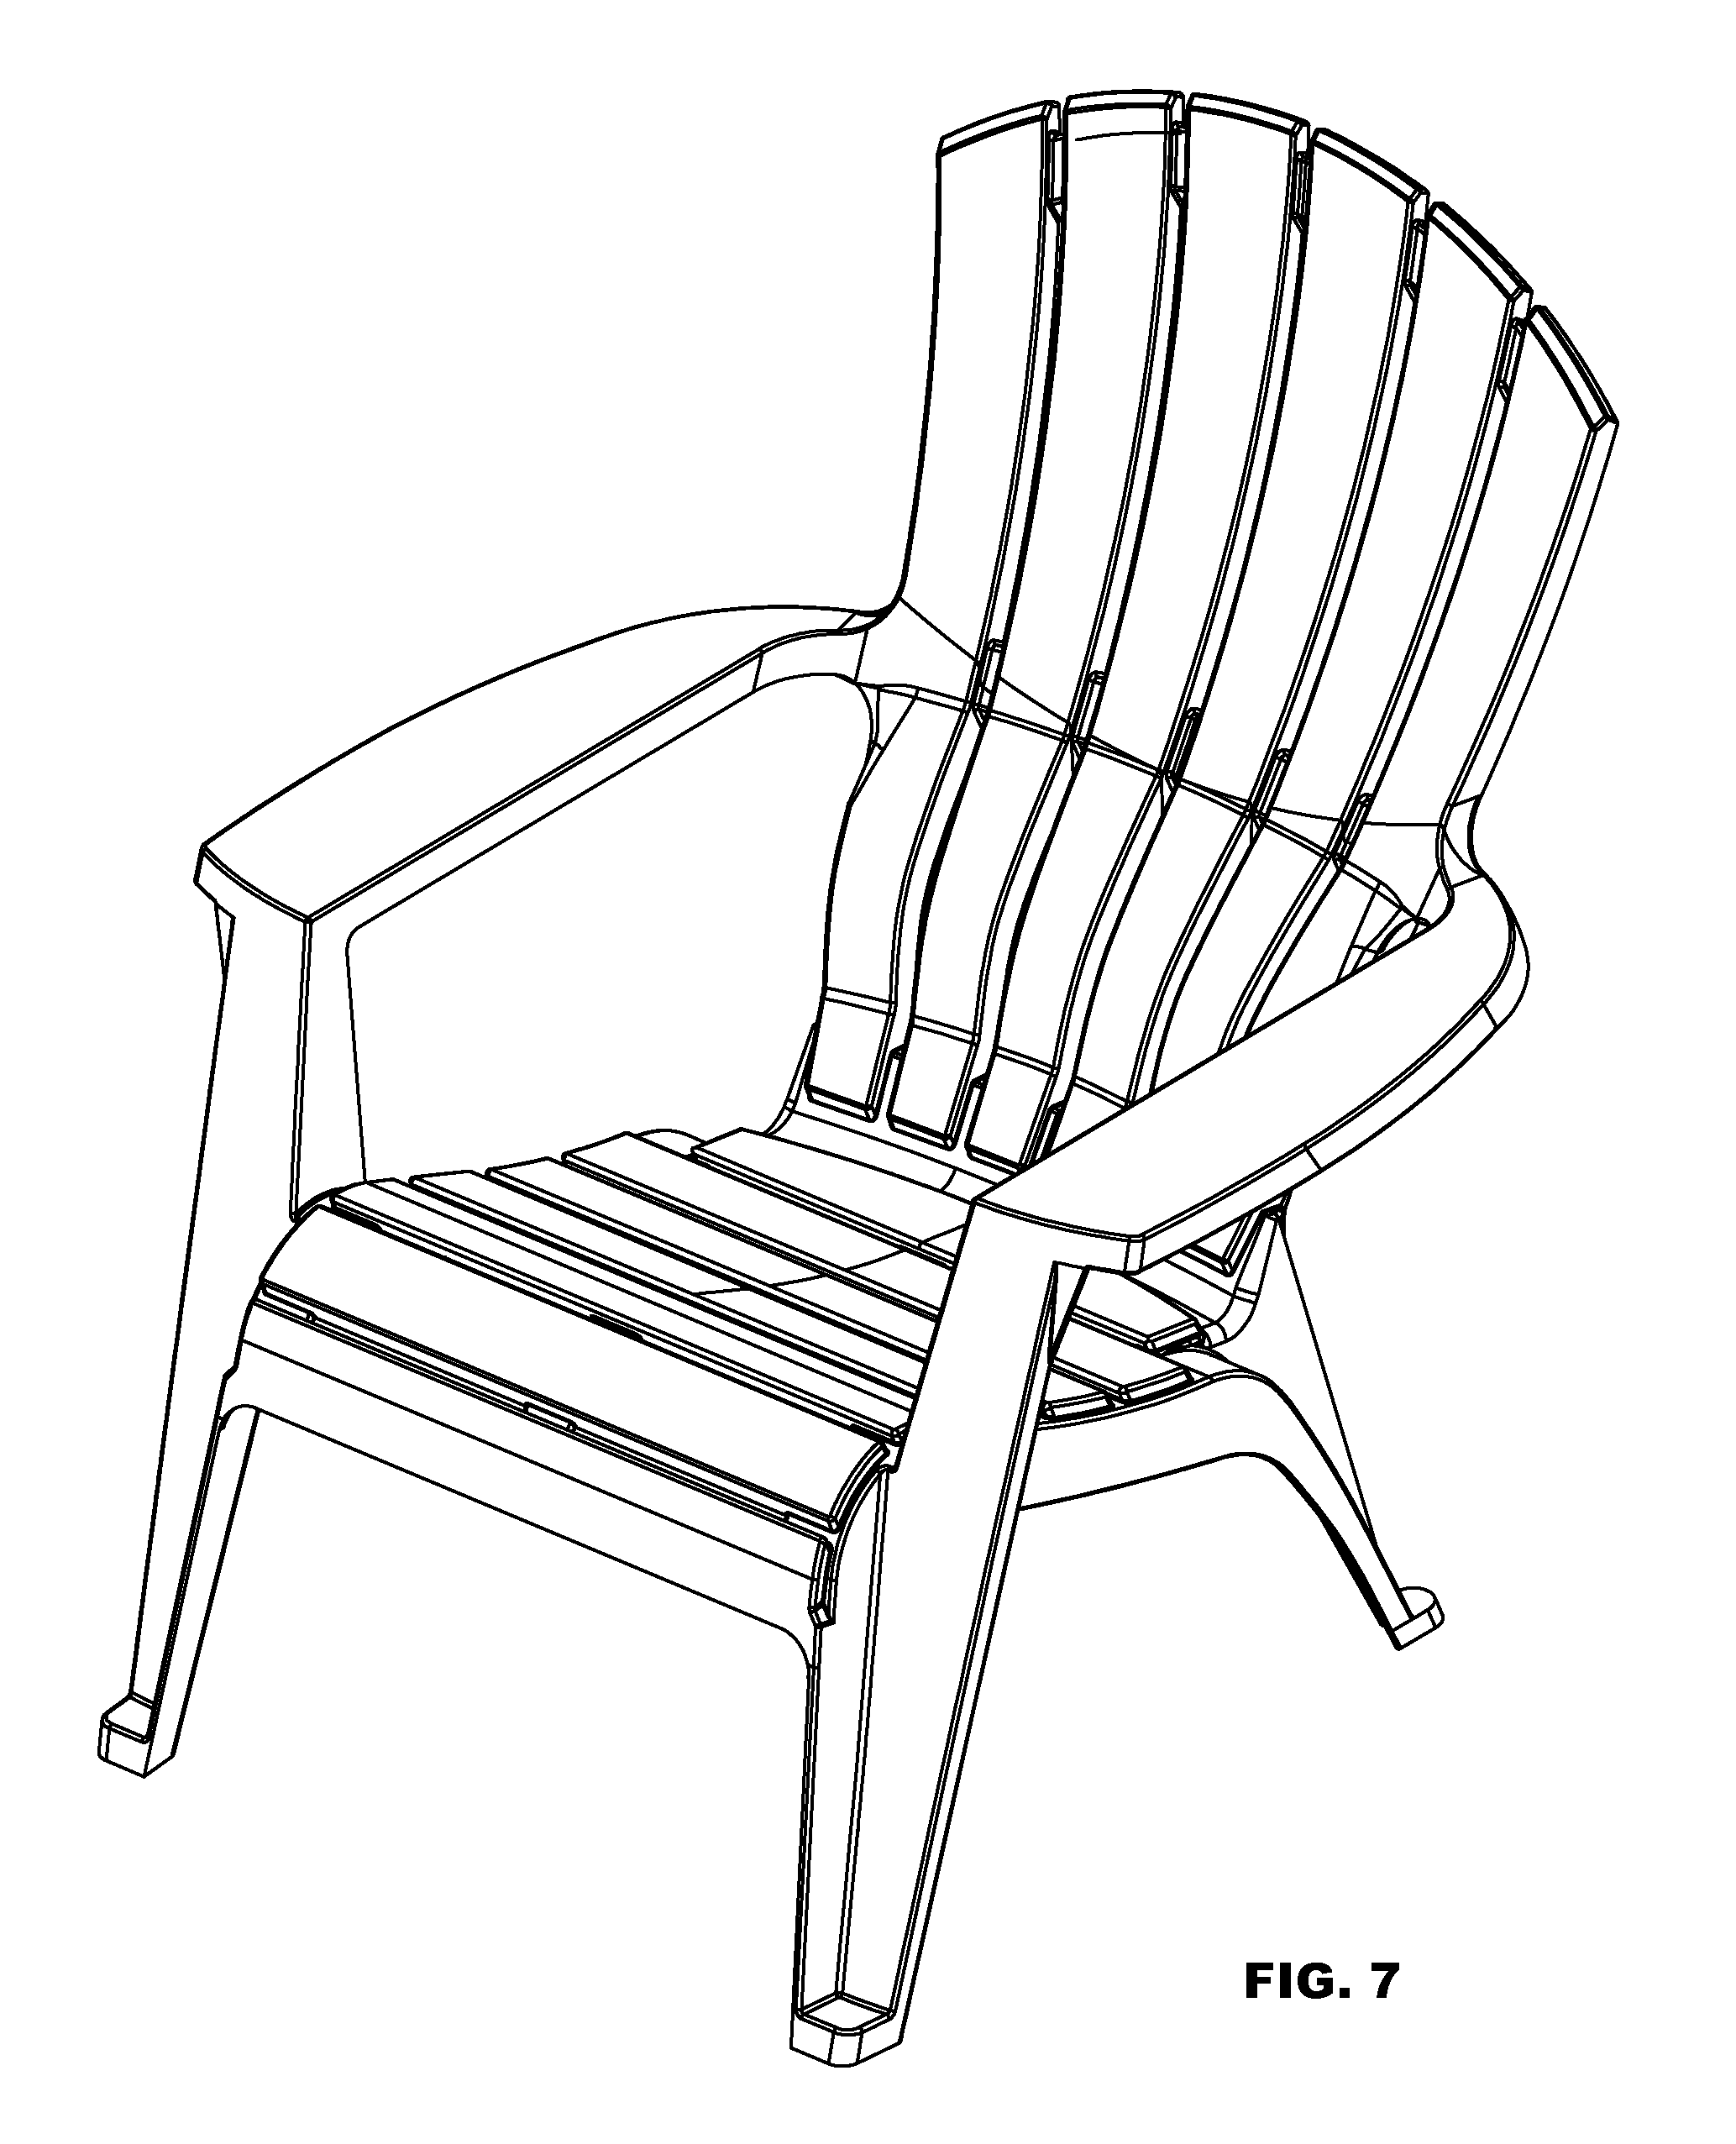 chair design patent booster seat that attaches to usd607223 adirondack with lumbar support